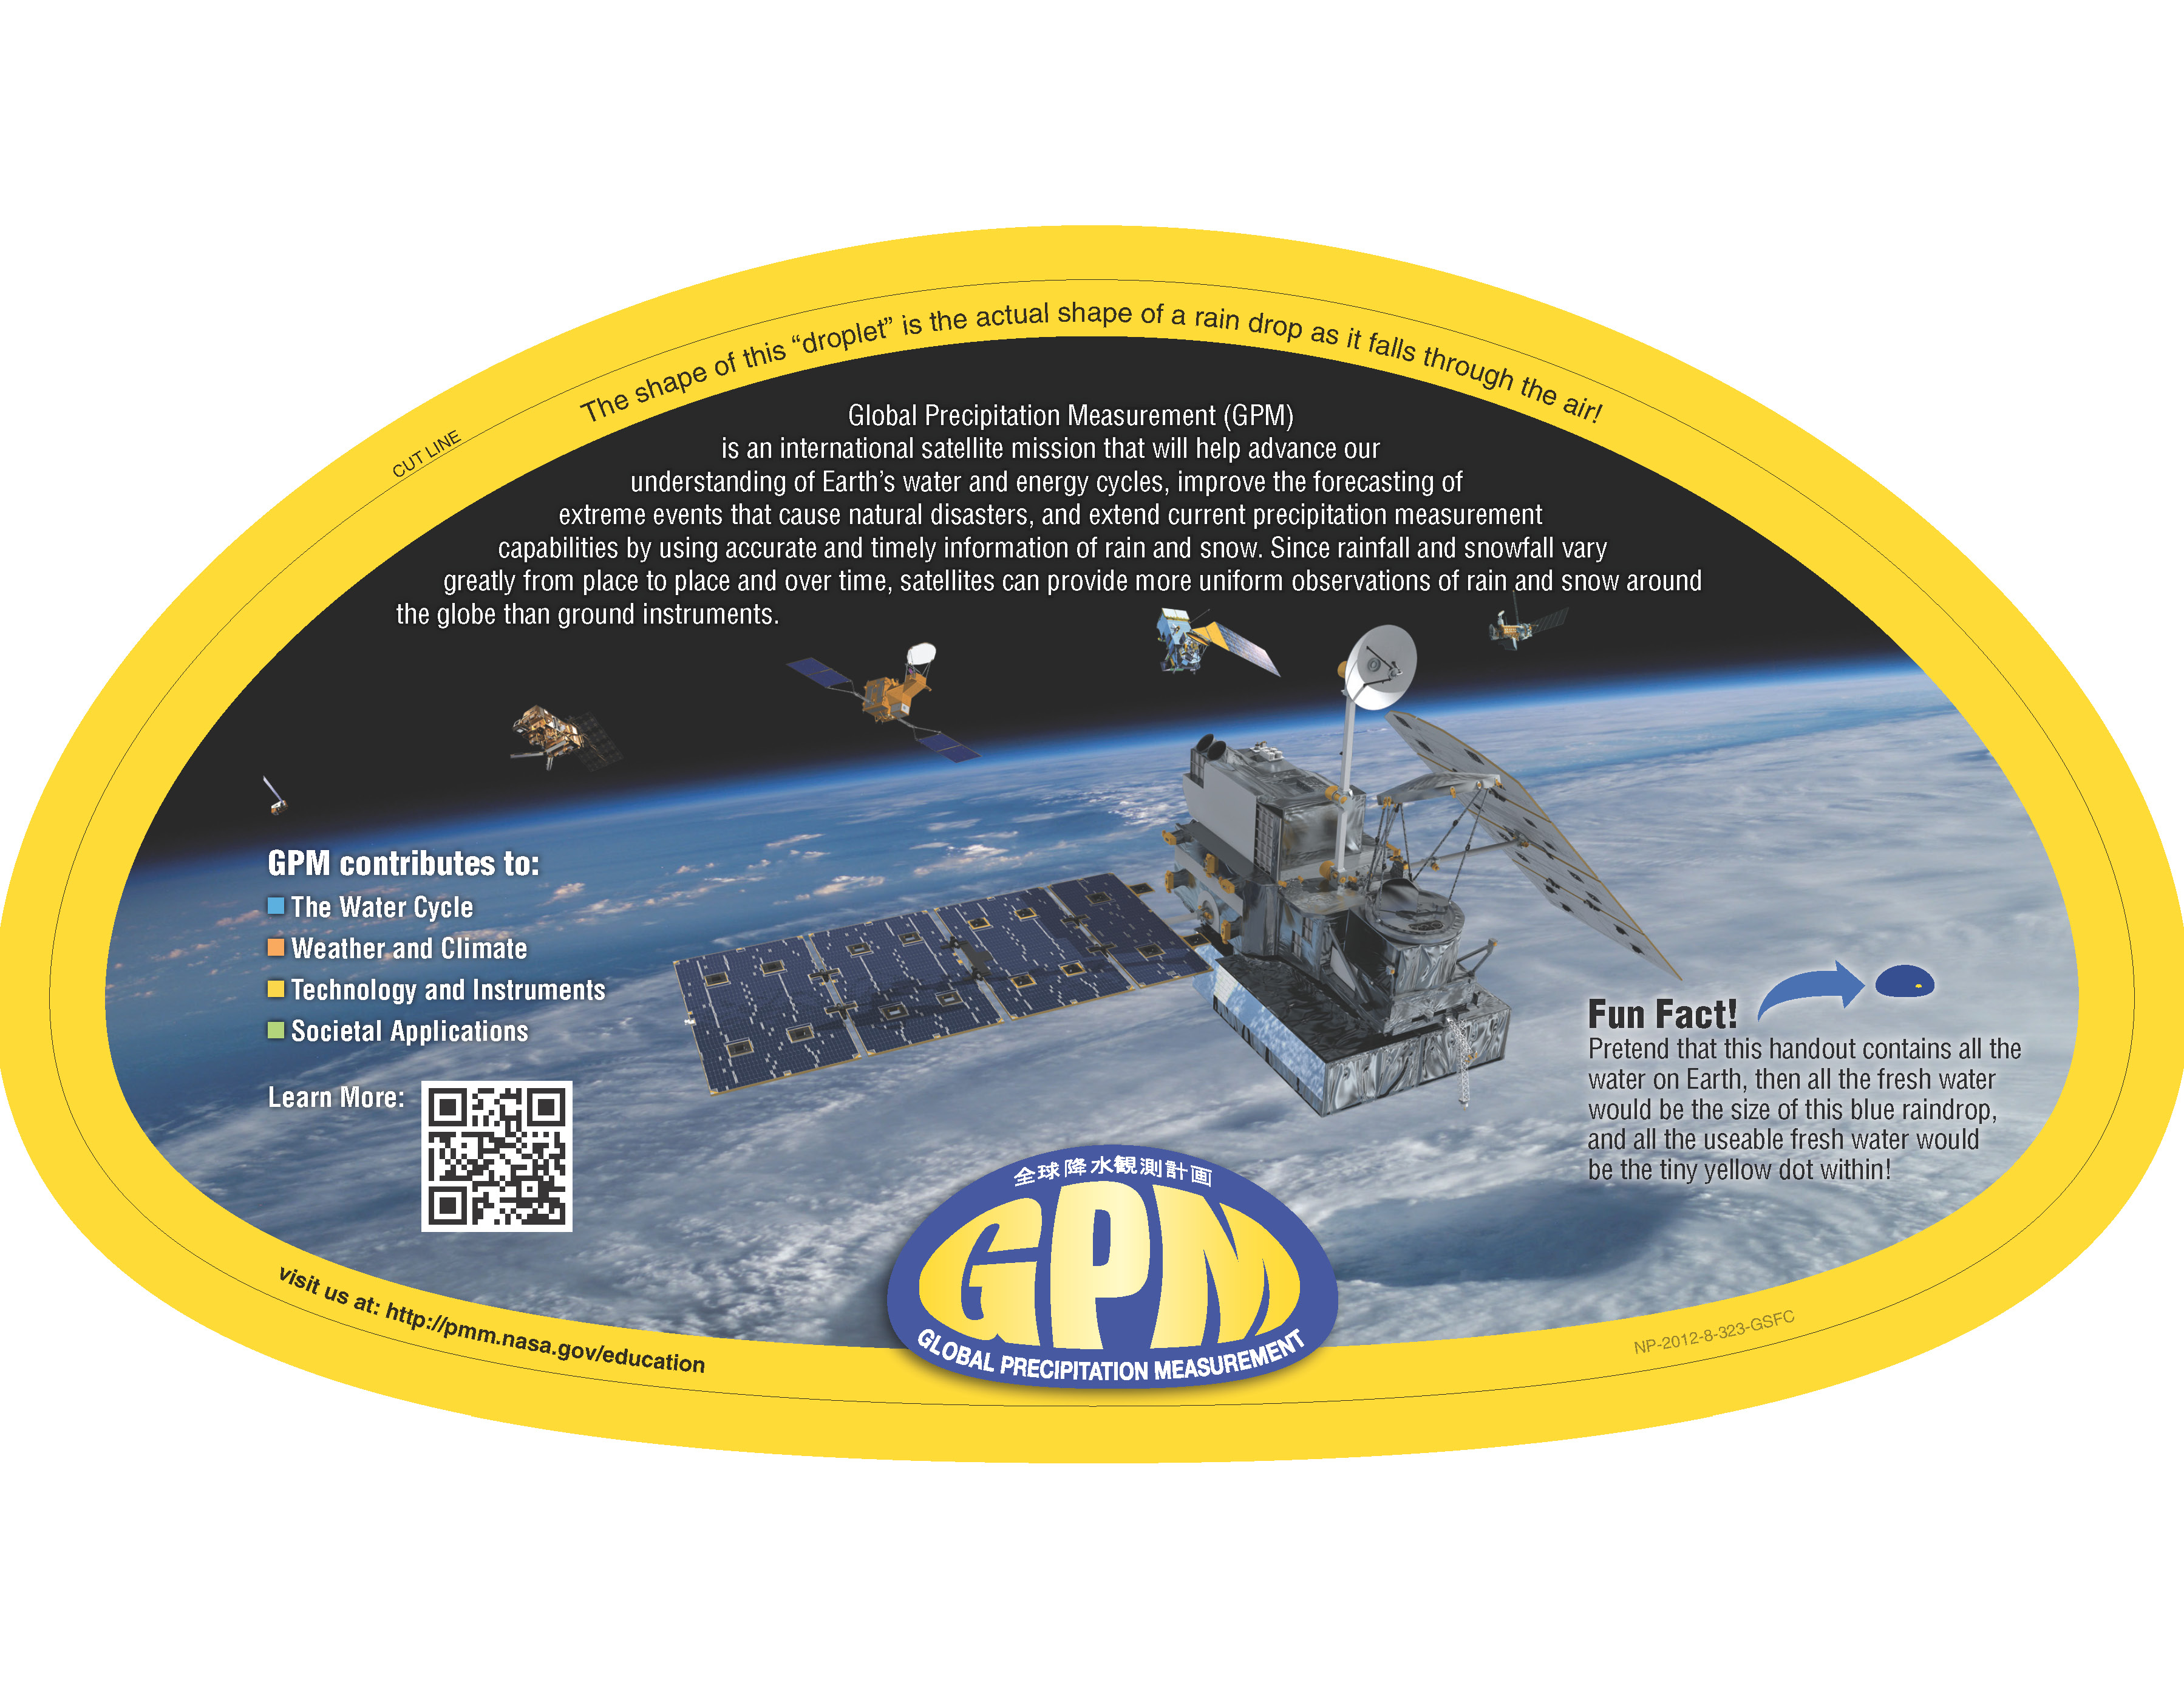 Back side of droplet handout, which has information about GPM and facts about water.